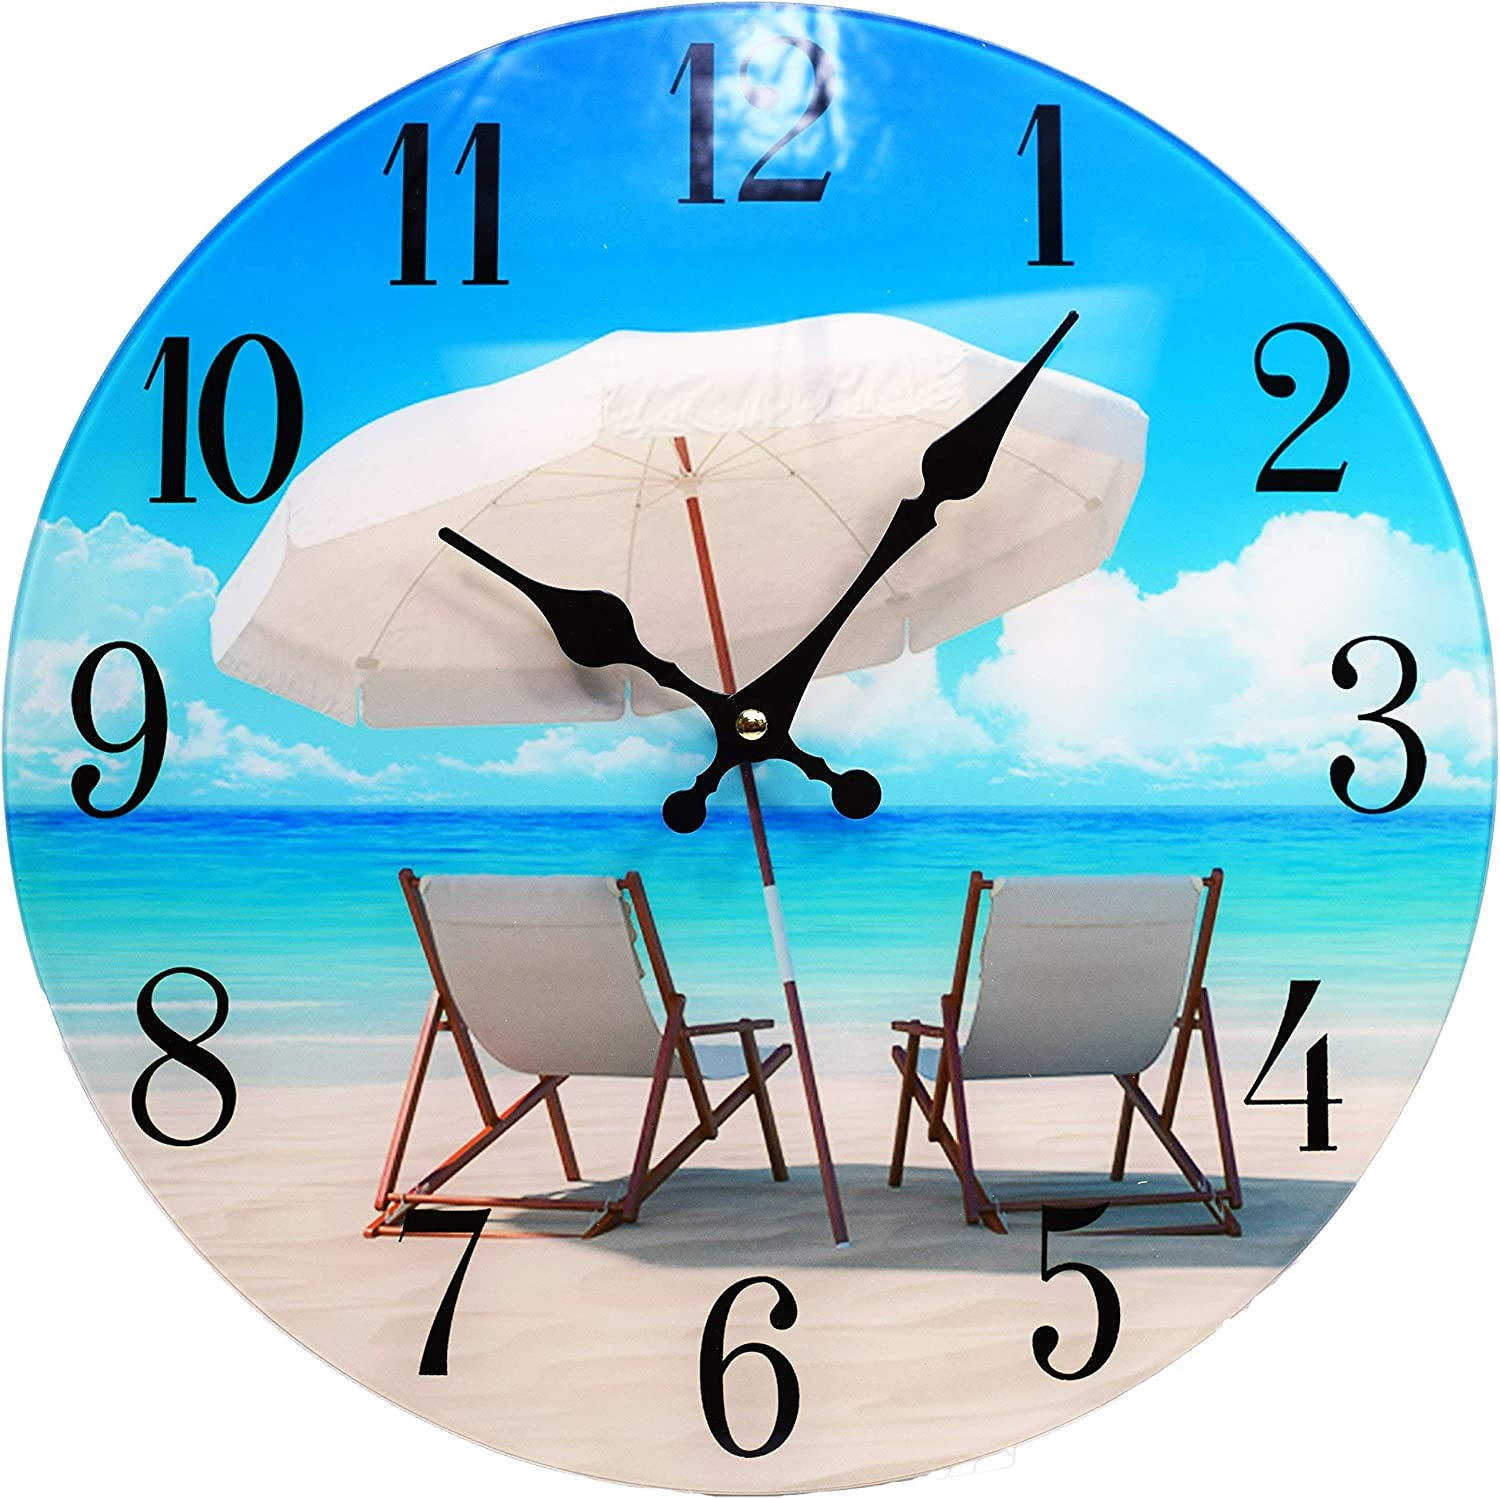 Sea Creations Beach Chair Glass Wall Clock New-13-X-13-Home-Wall-Decor-Coastal-Nautical-Beach